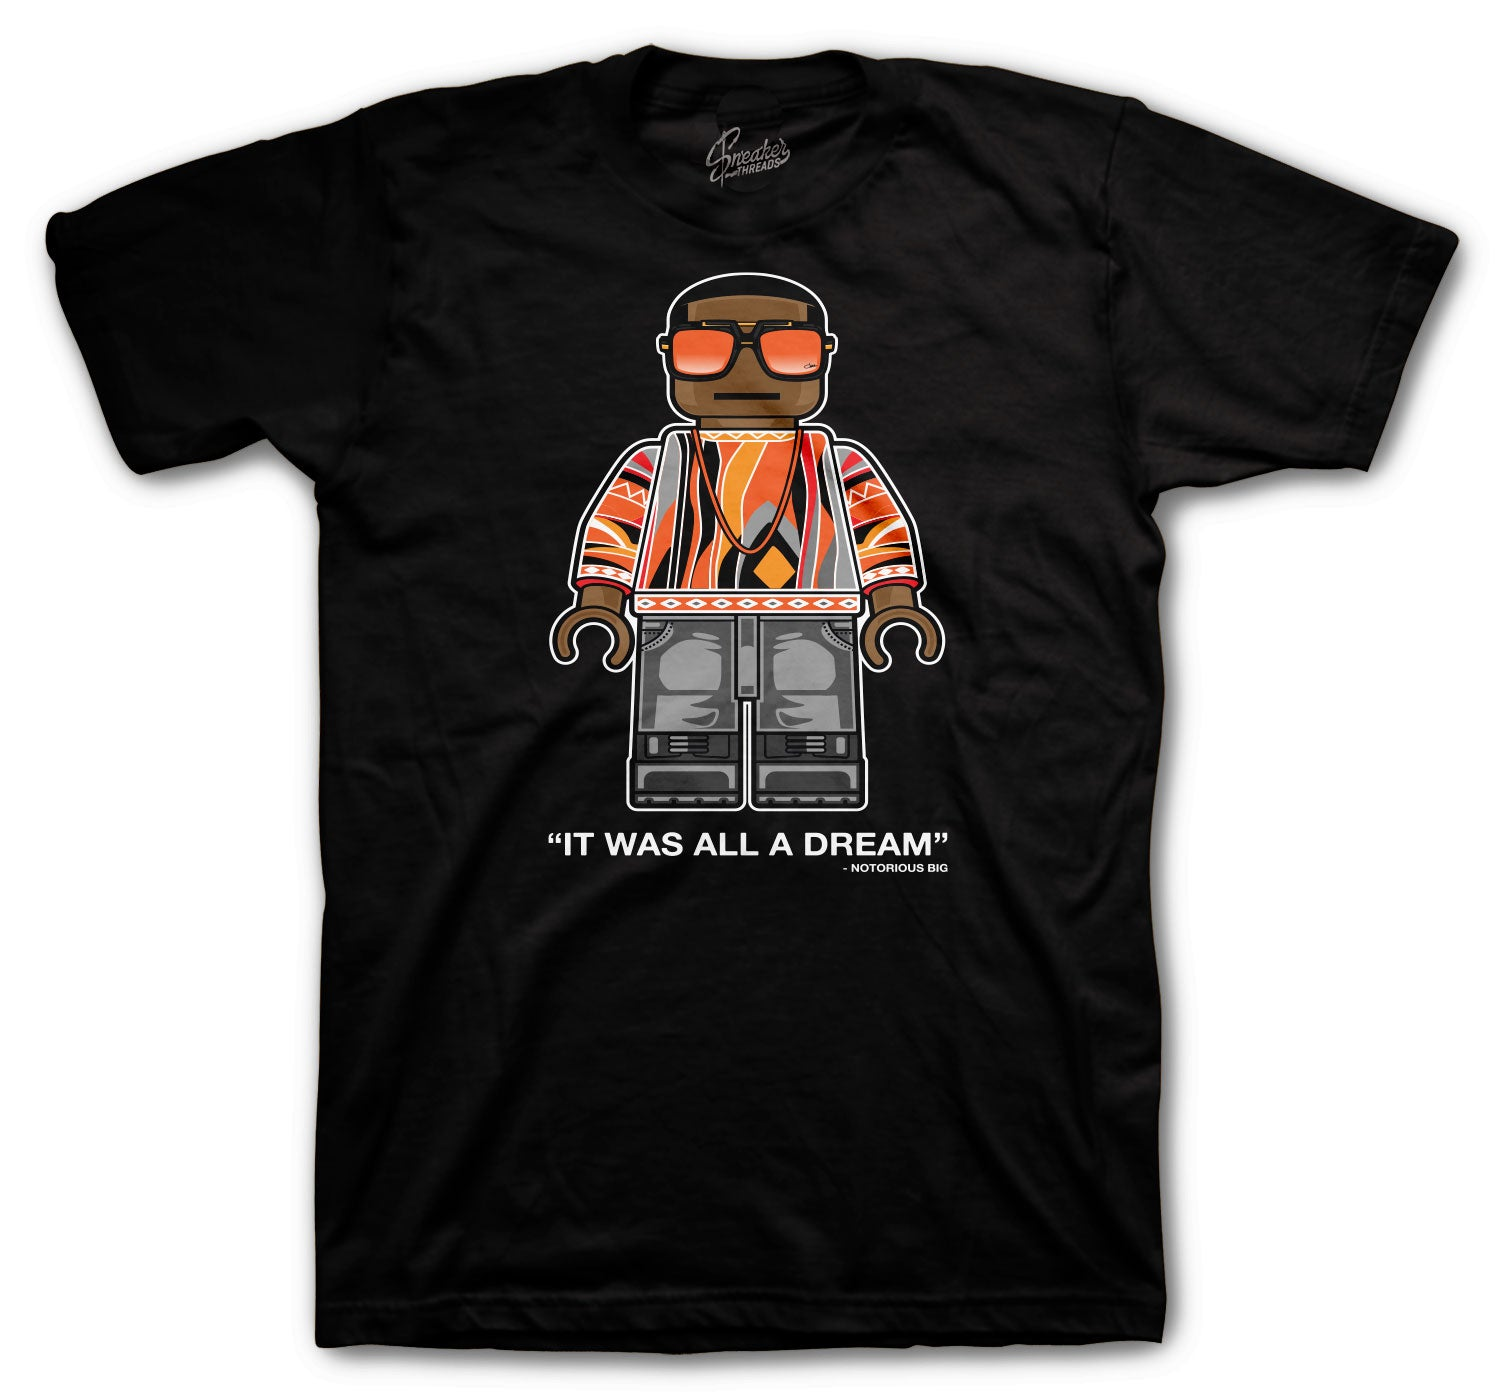 Foamposite Pro Halloween Shirt - Big Bic - Black